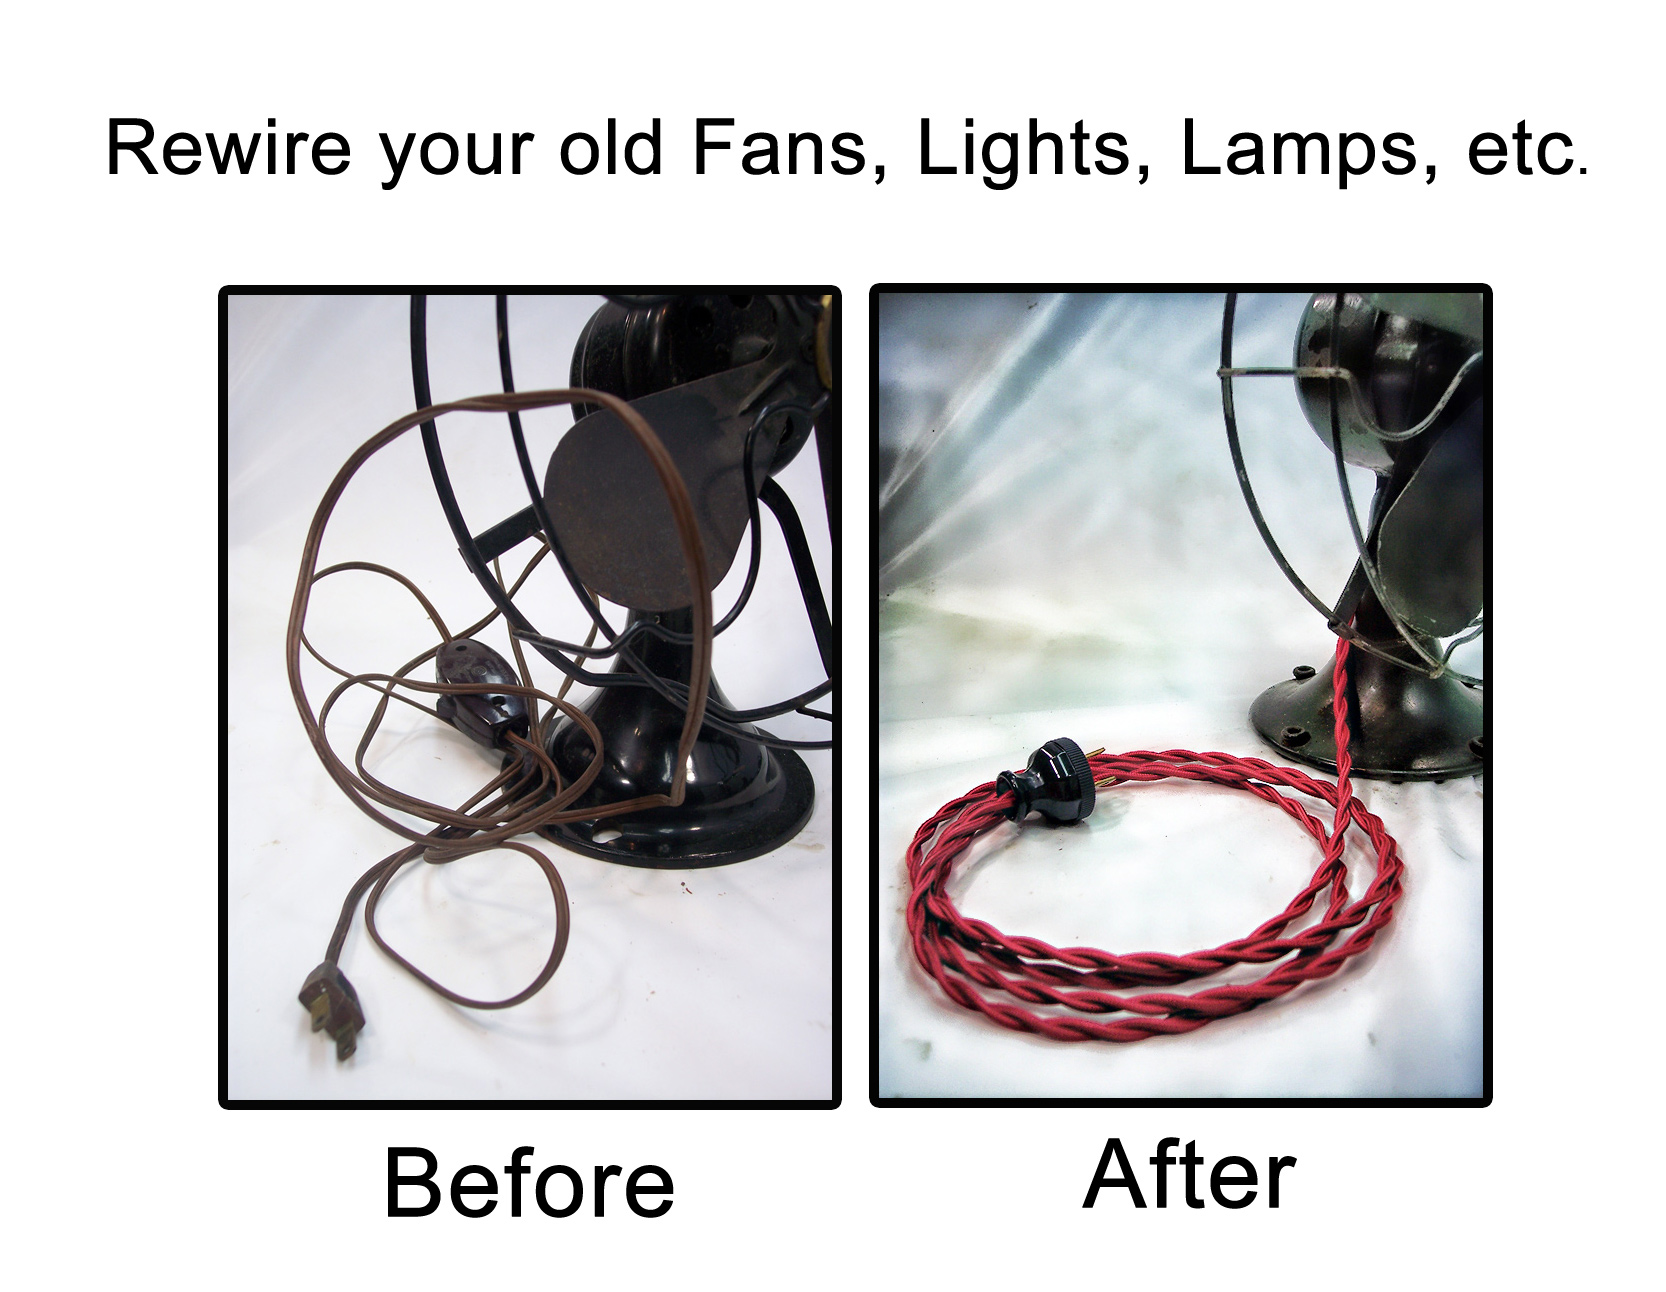 Peachy Cloth Covered Rewire Kits For Lamp Fan Restorations Wiring 101 Cranwise Assnl